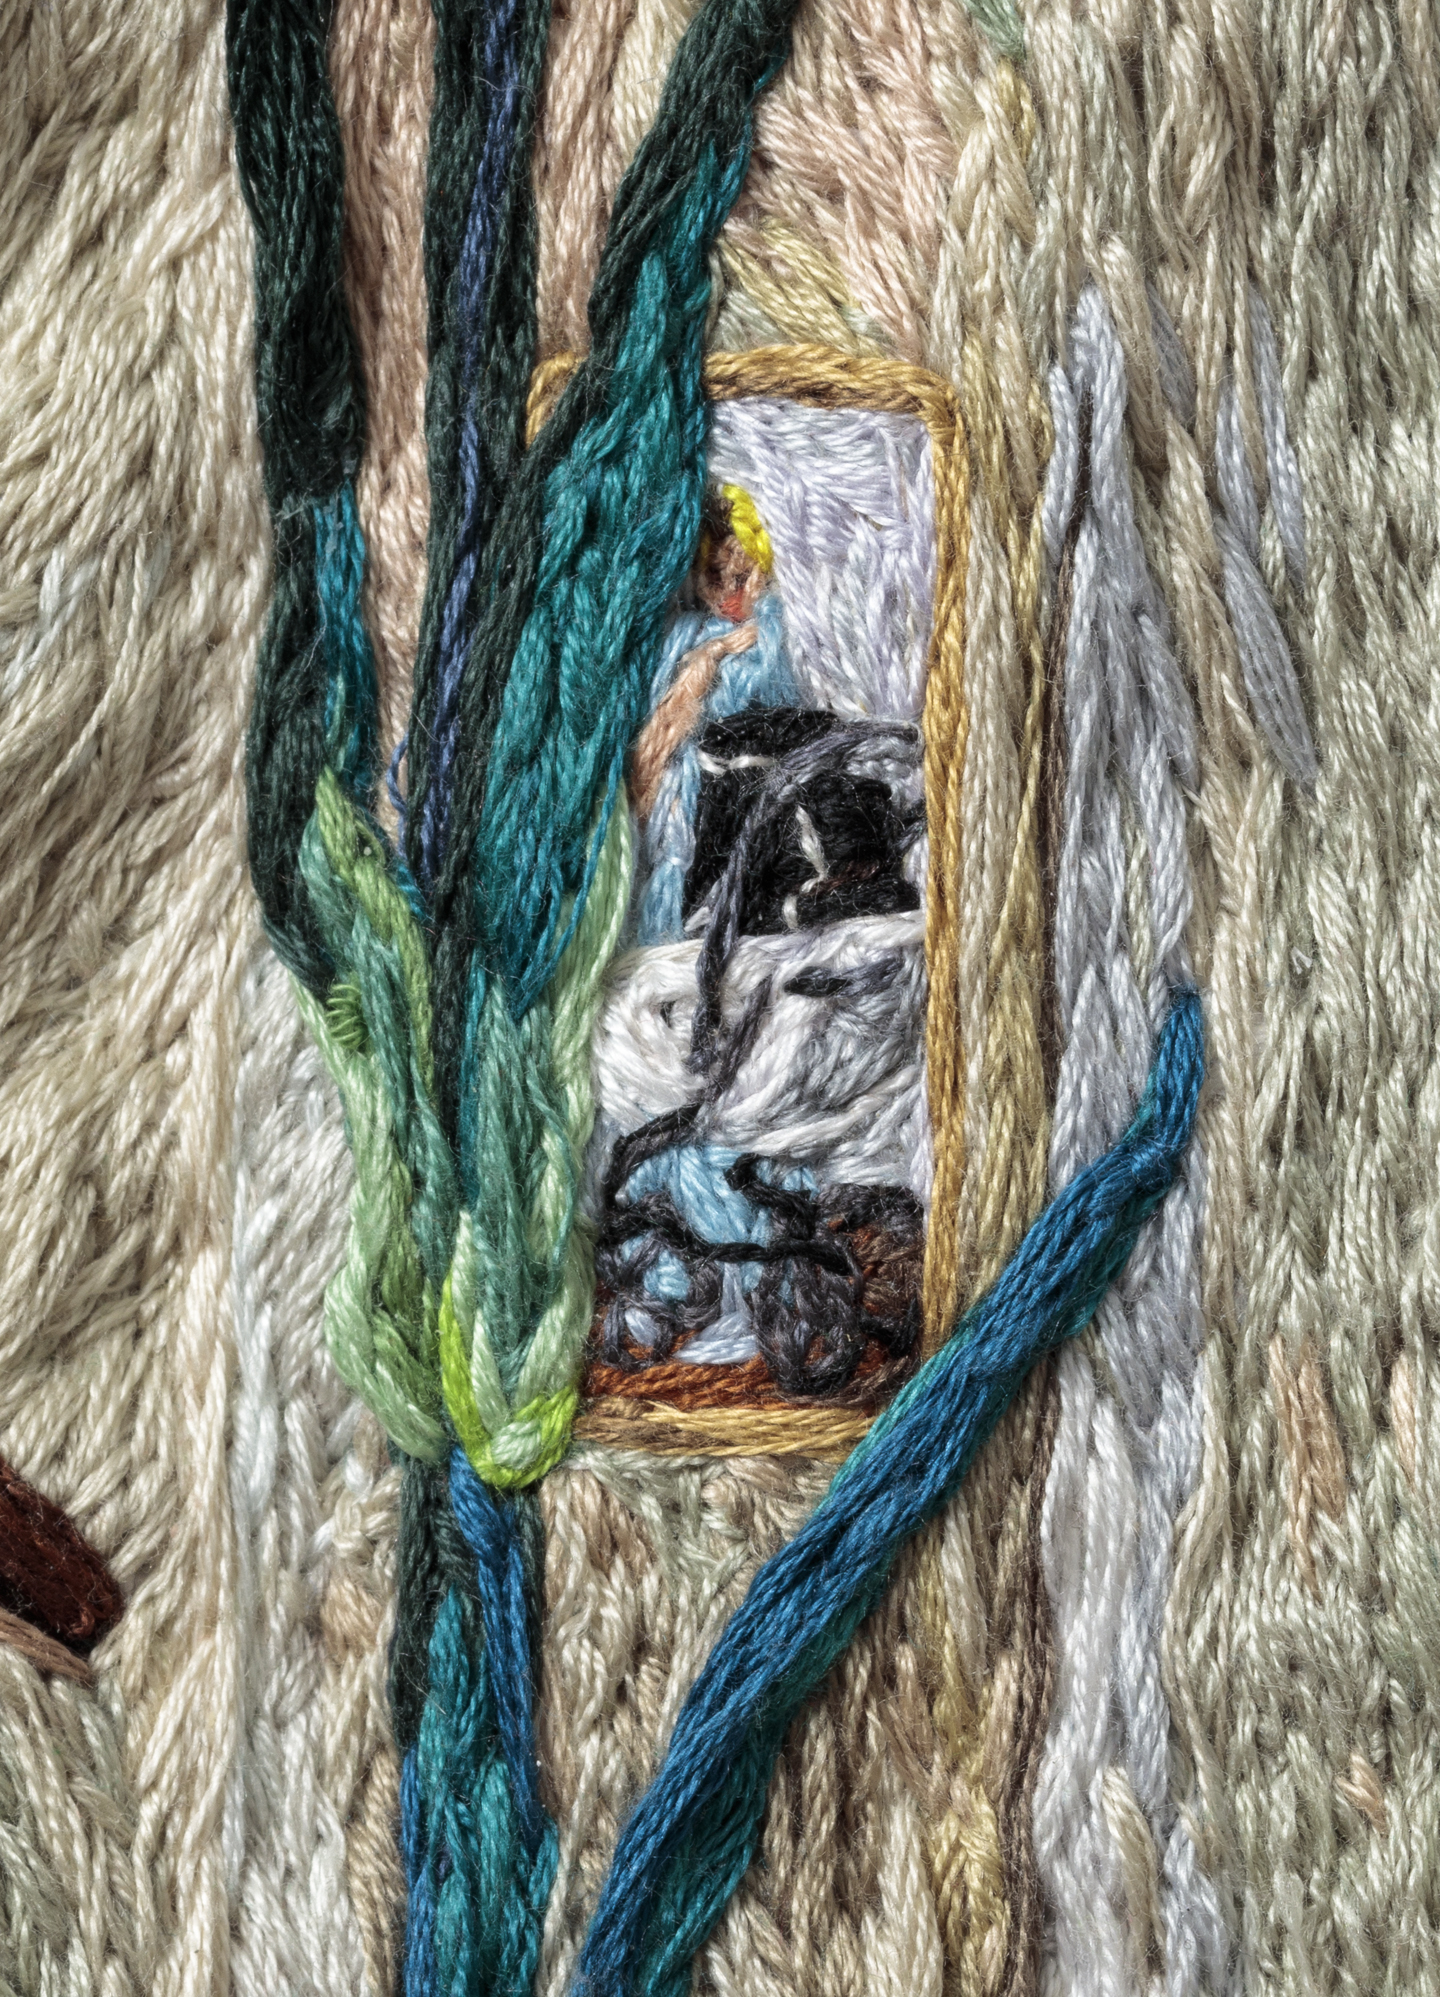 3O3 . When Your Heart Is Open, Sophia Narrett, 2015-16, Embroidery Thread and Fabric.jpg